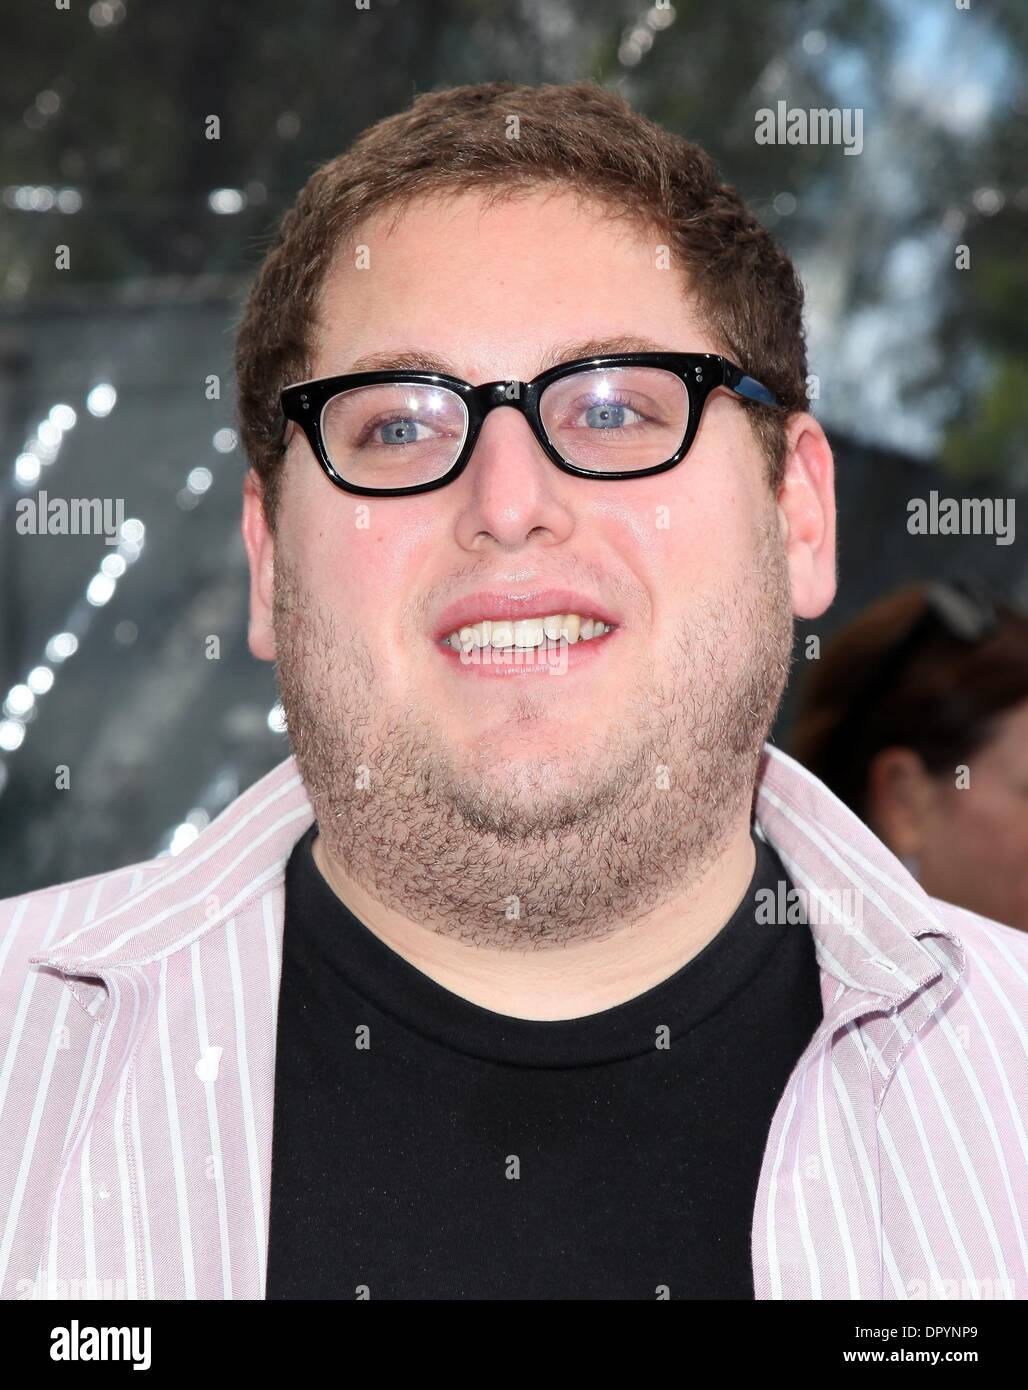 Mar 22, 2009 - Universal City, California, USA - Actor JONAH HILL arriving to the 'Monsters VS Aliens' Los Angeles Premiere held at the Gibson Amphitheatre. (Credit Image: © Lisa O'Connor/ZUMA Press) - Stock Image